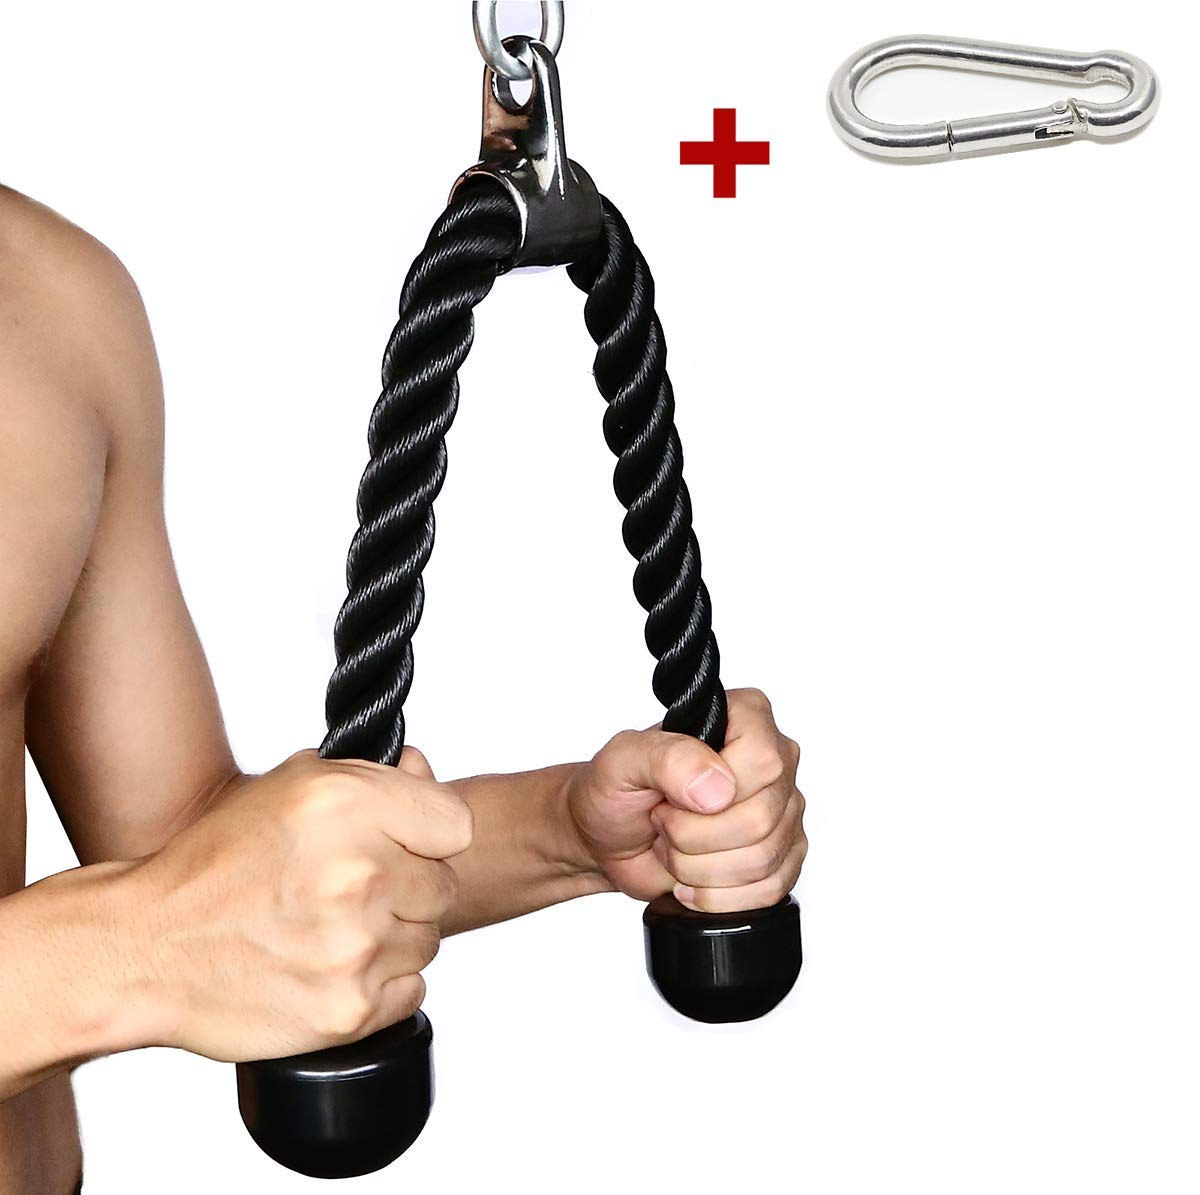 Tricep Rope 27 & 35 inches 2 Colors Fitness Attachment Cable Machine Pulldown Heavy Duty Coated Nylon Rope with Solid Rubber Ends